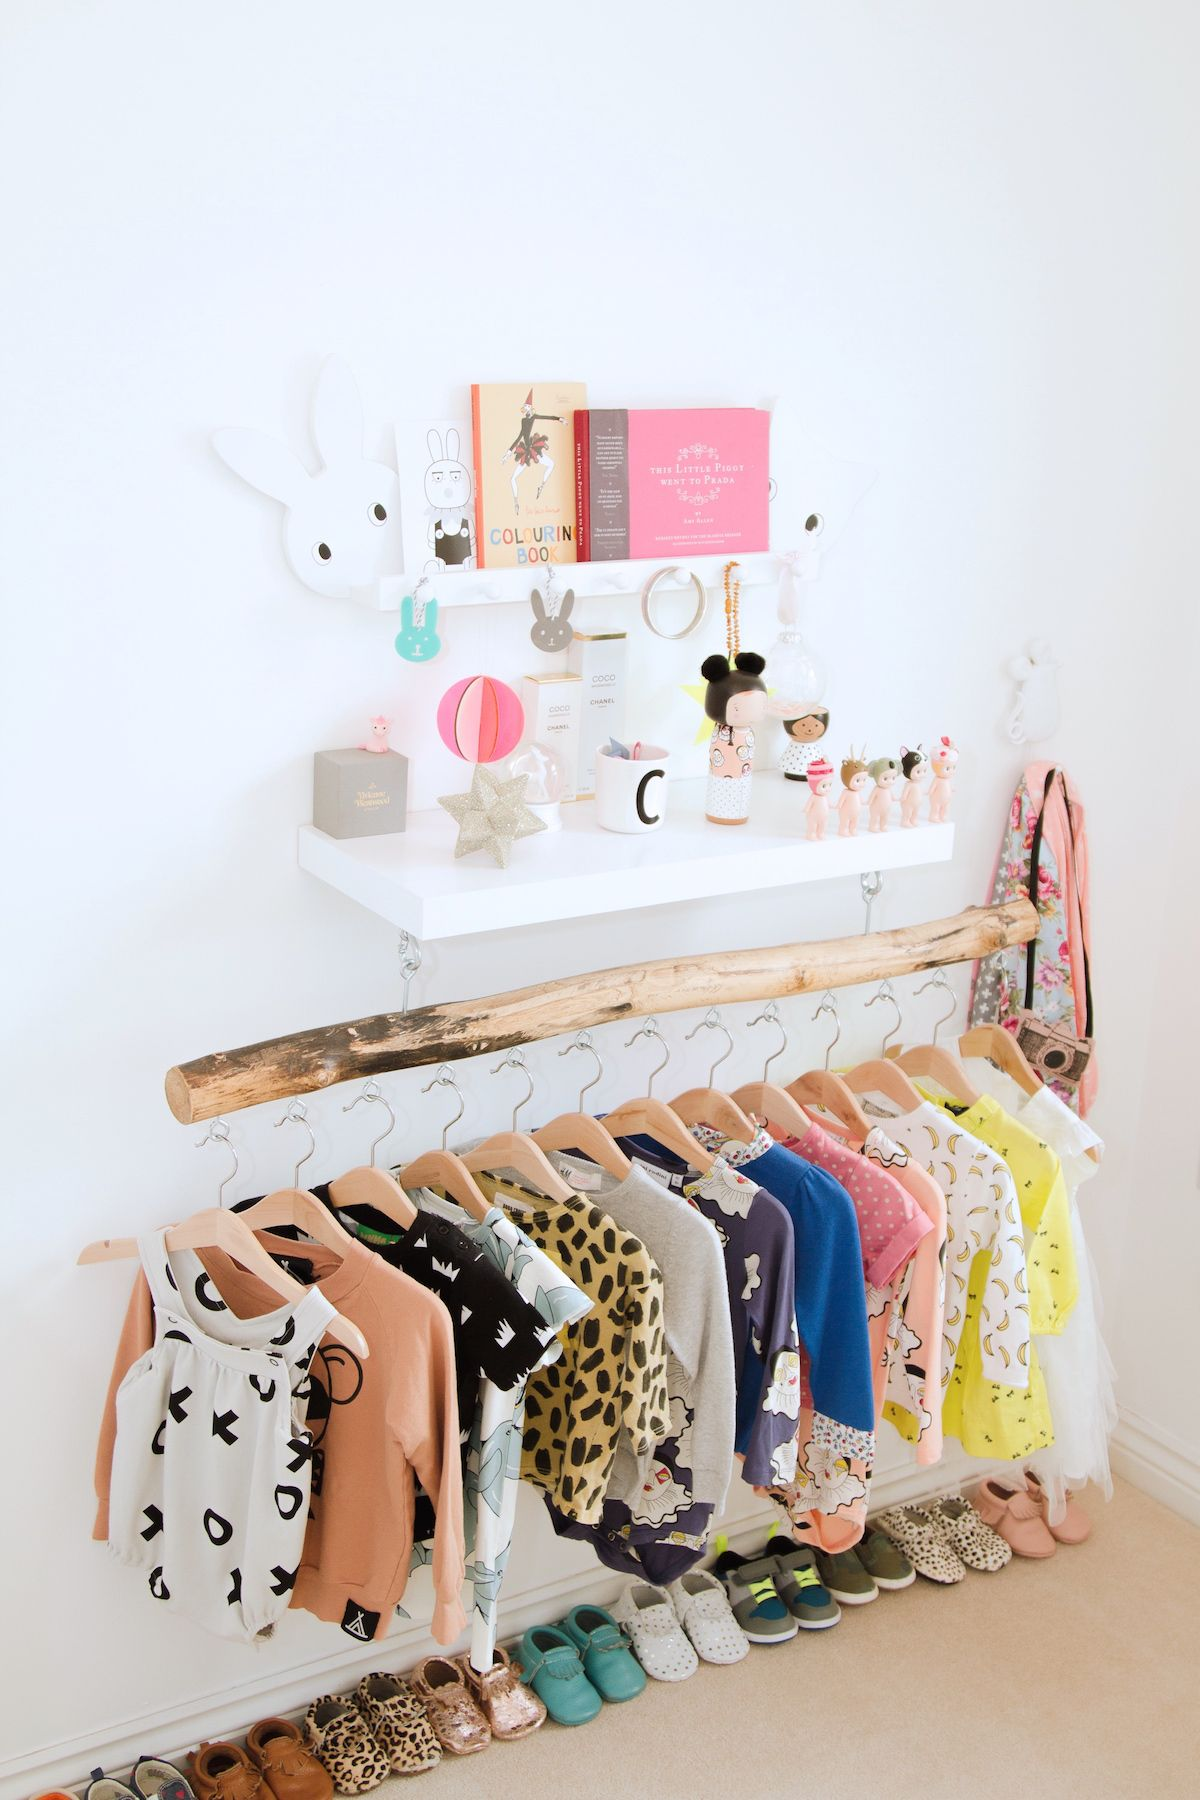 kids rack t what dont don to wardrobe you do bedroom a furniture when fittings have clothing